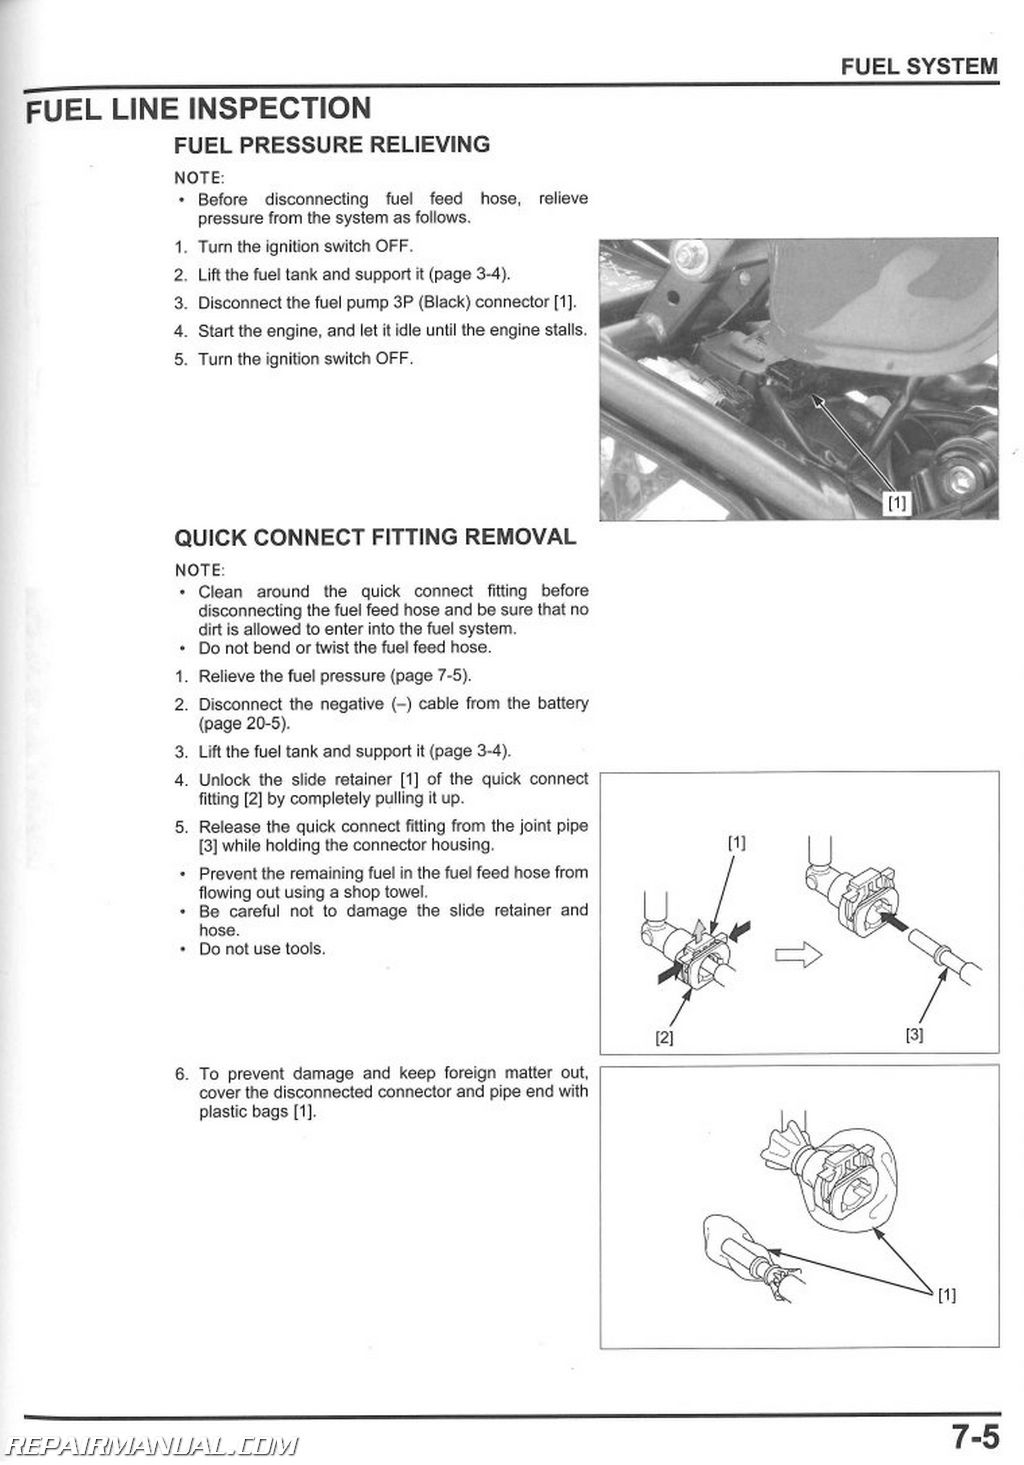 2013 2015 Honda Nch50 Metropolitan Scooter Service Manual Rh Repairmanual  Com Honda Metropolitan Top Speed 2013